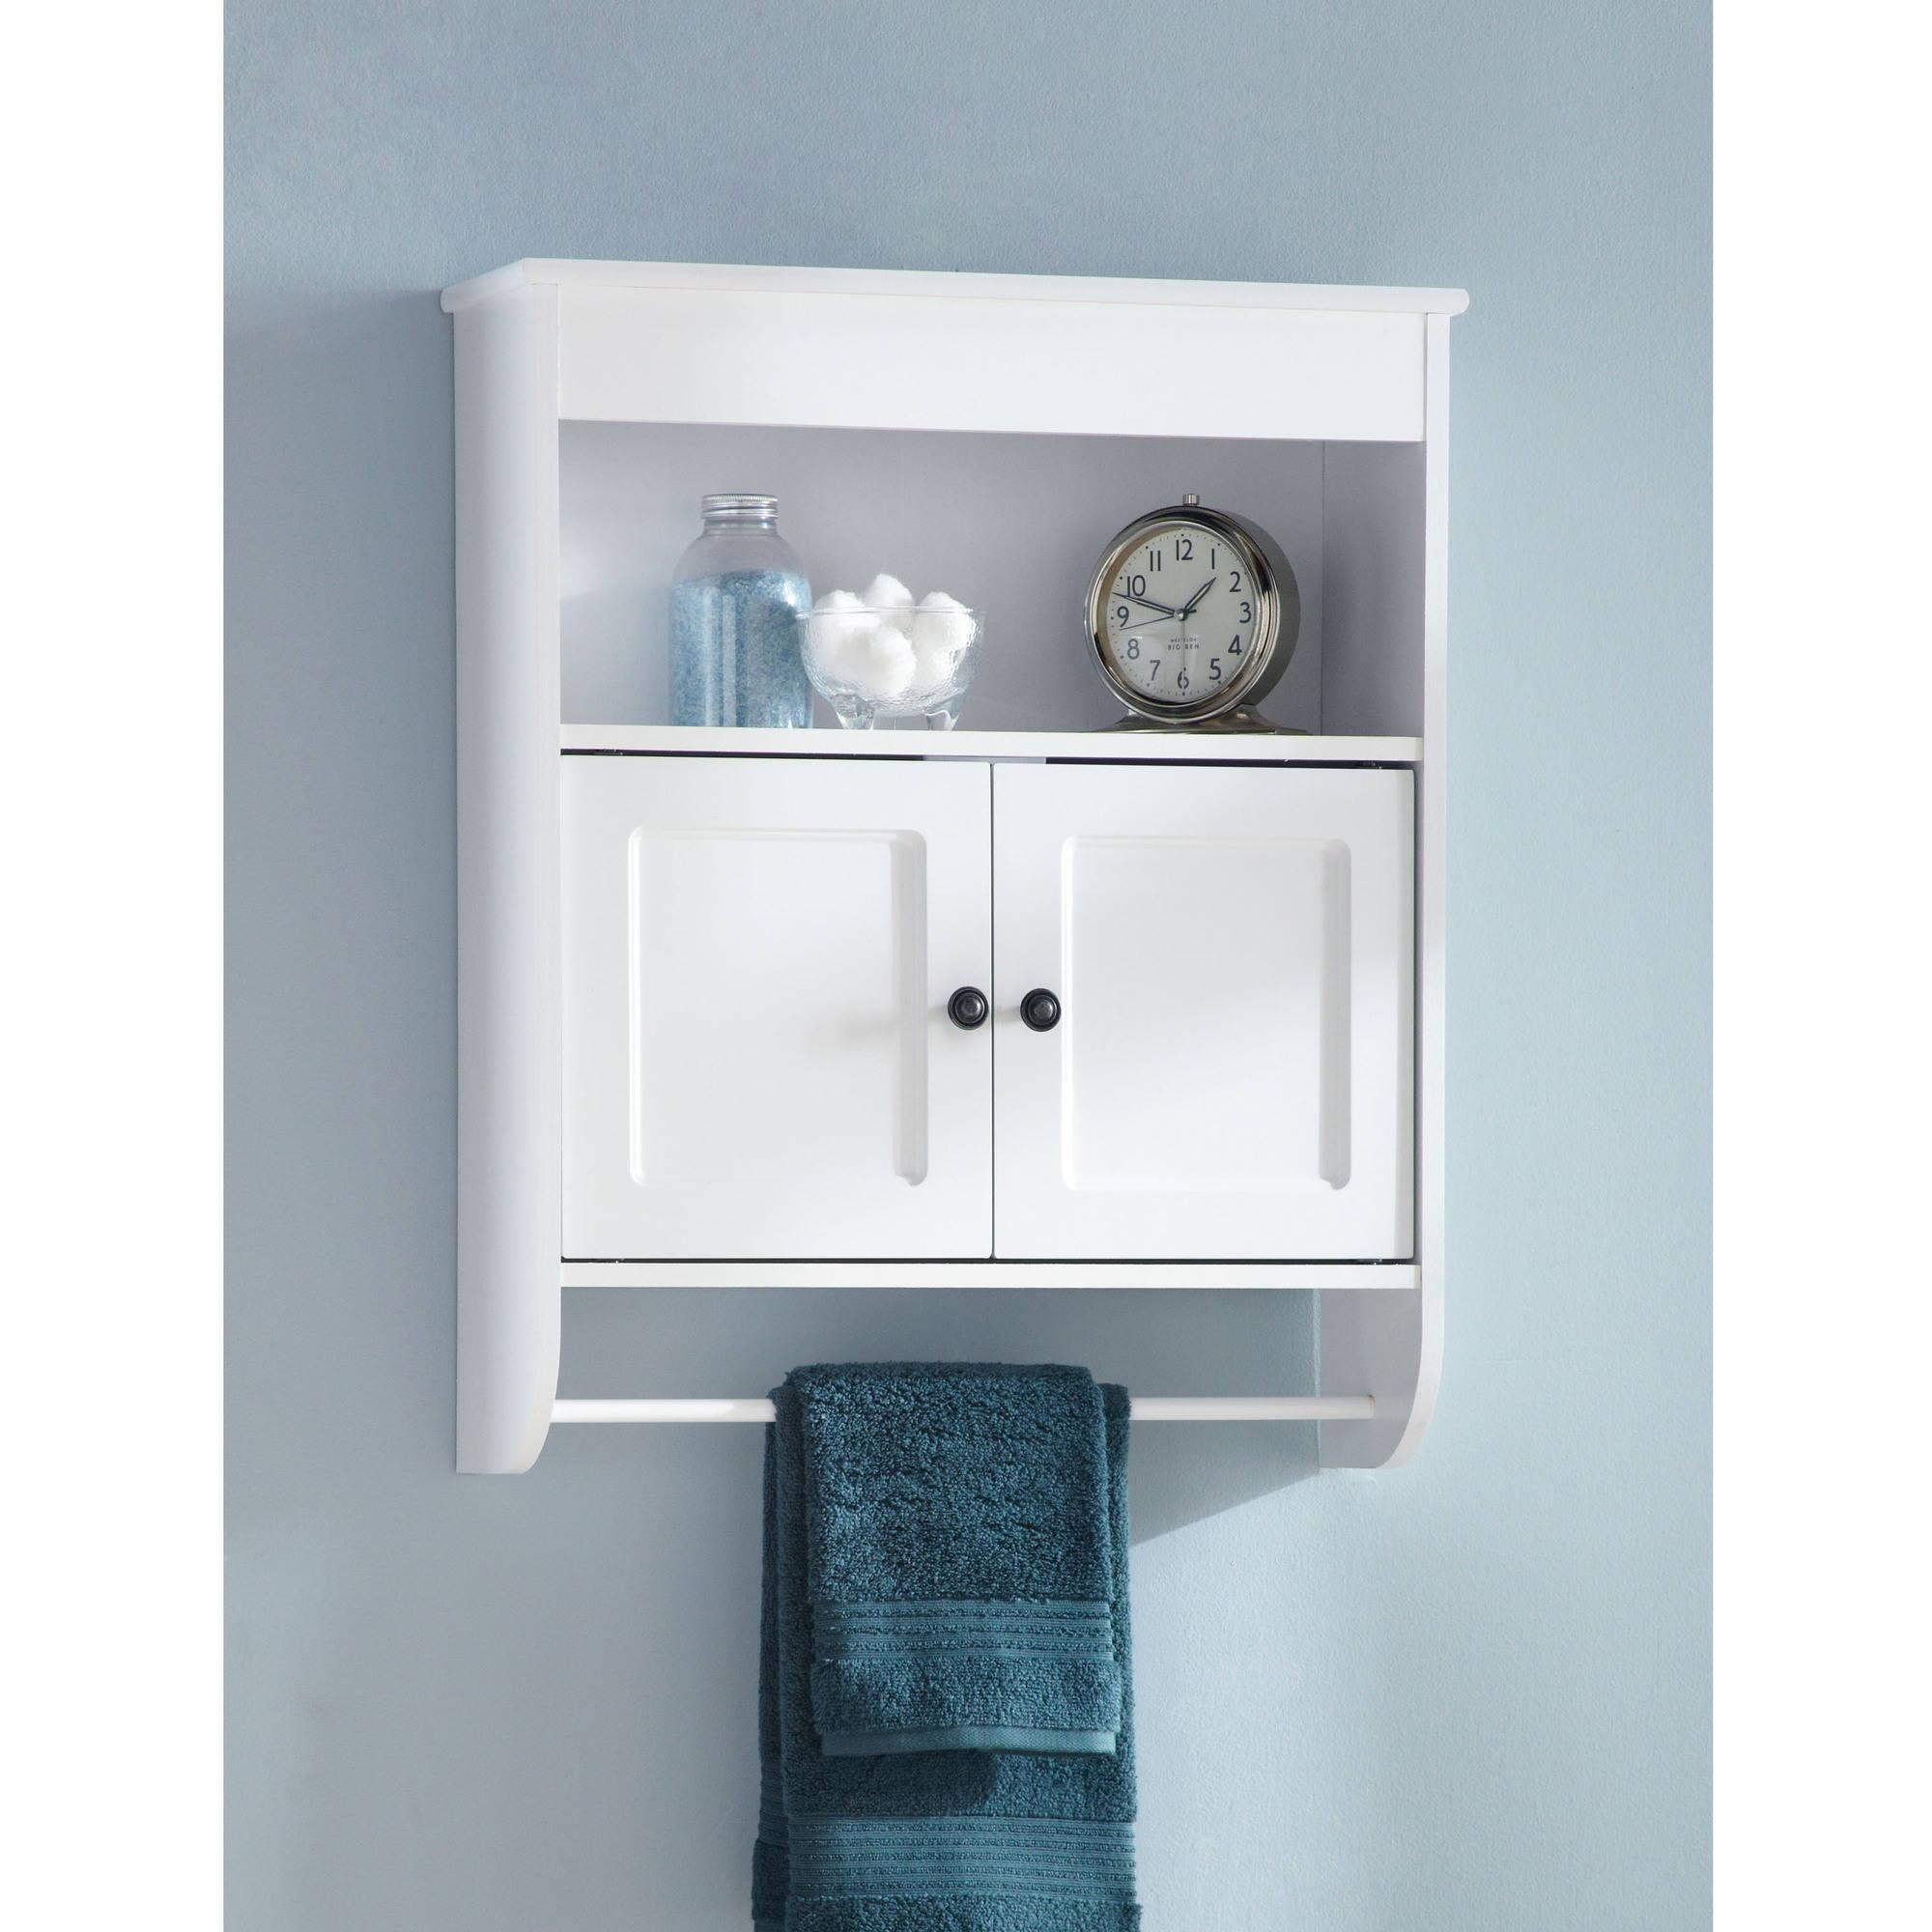 Bathroom Wall Cabinets Houzzover the toilet space savers walmart com hawthorne place wood wall